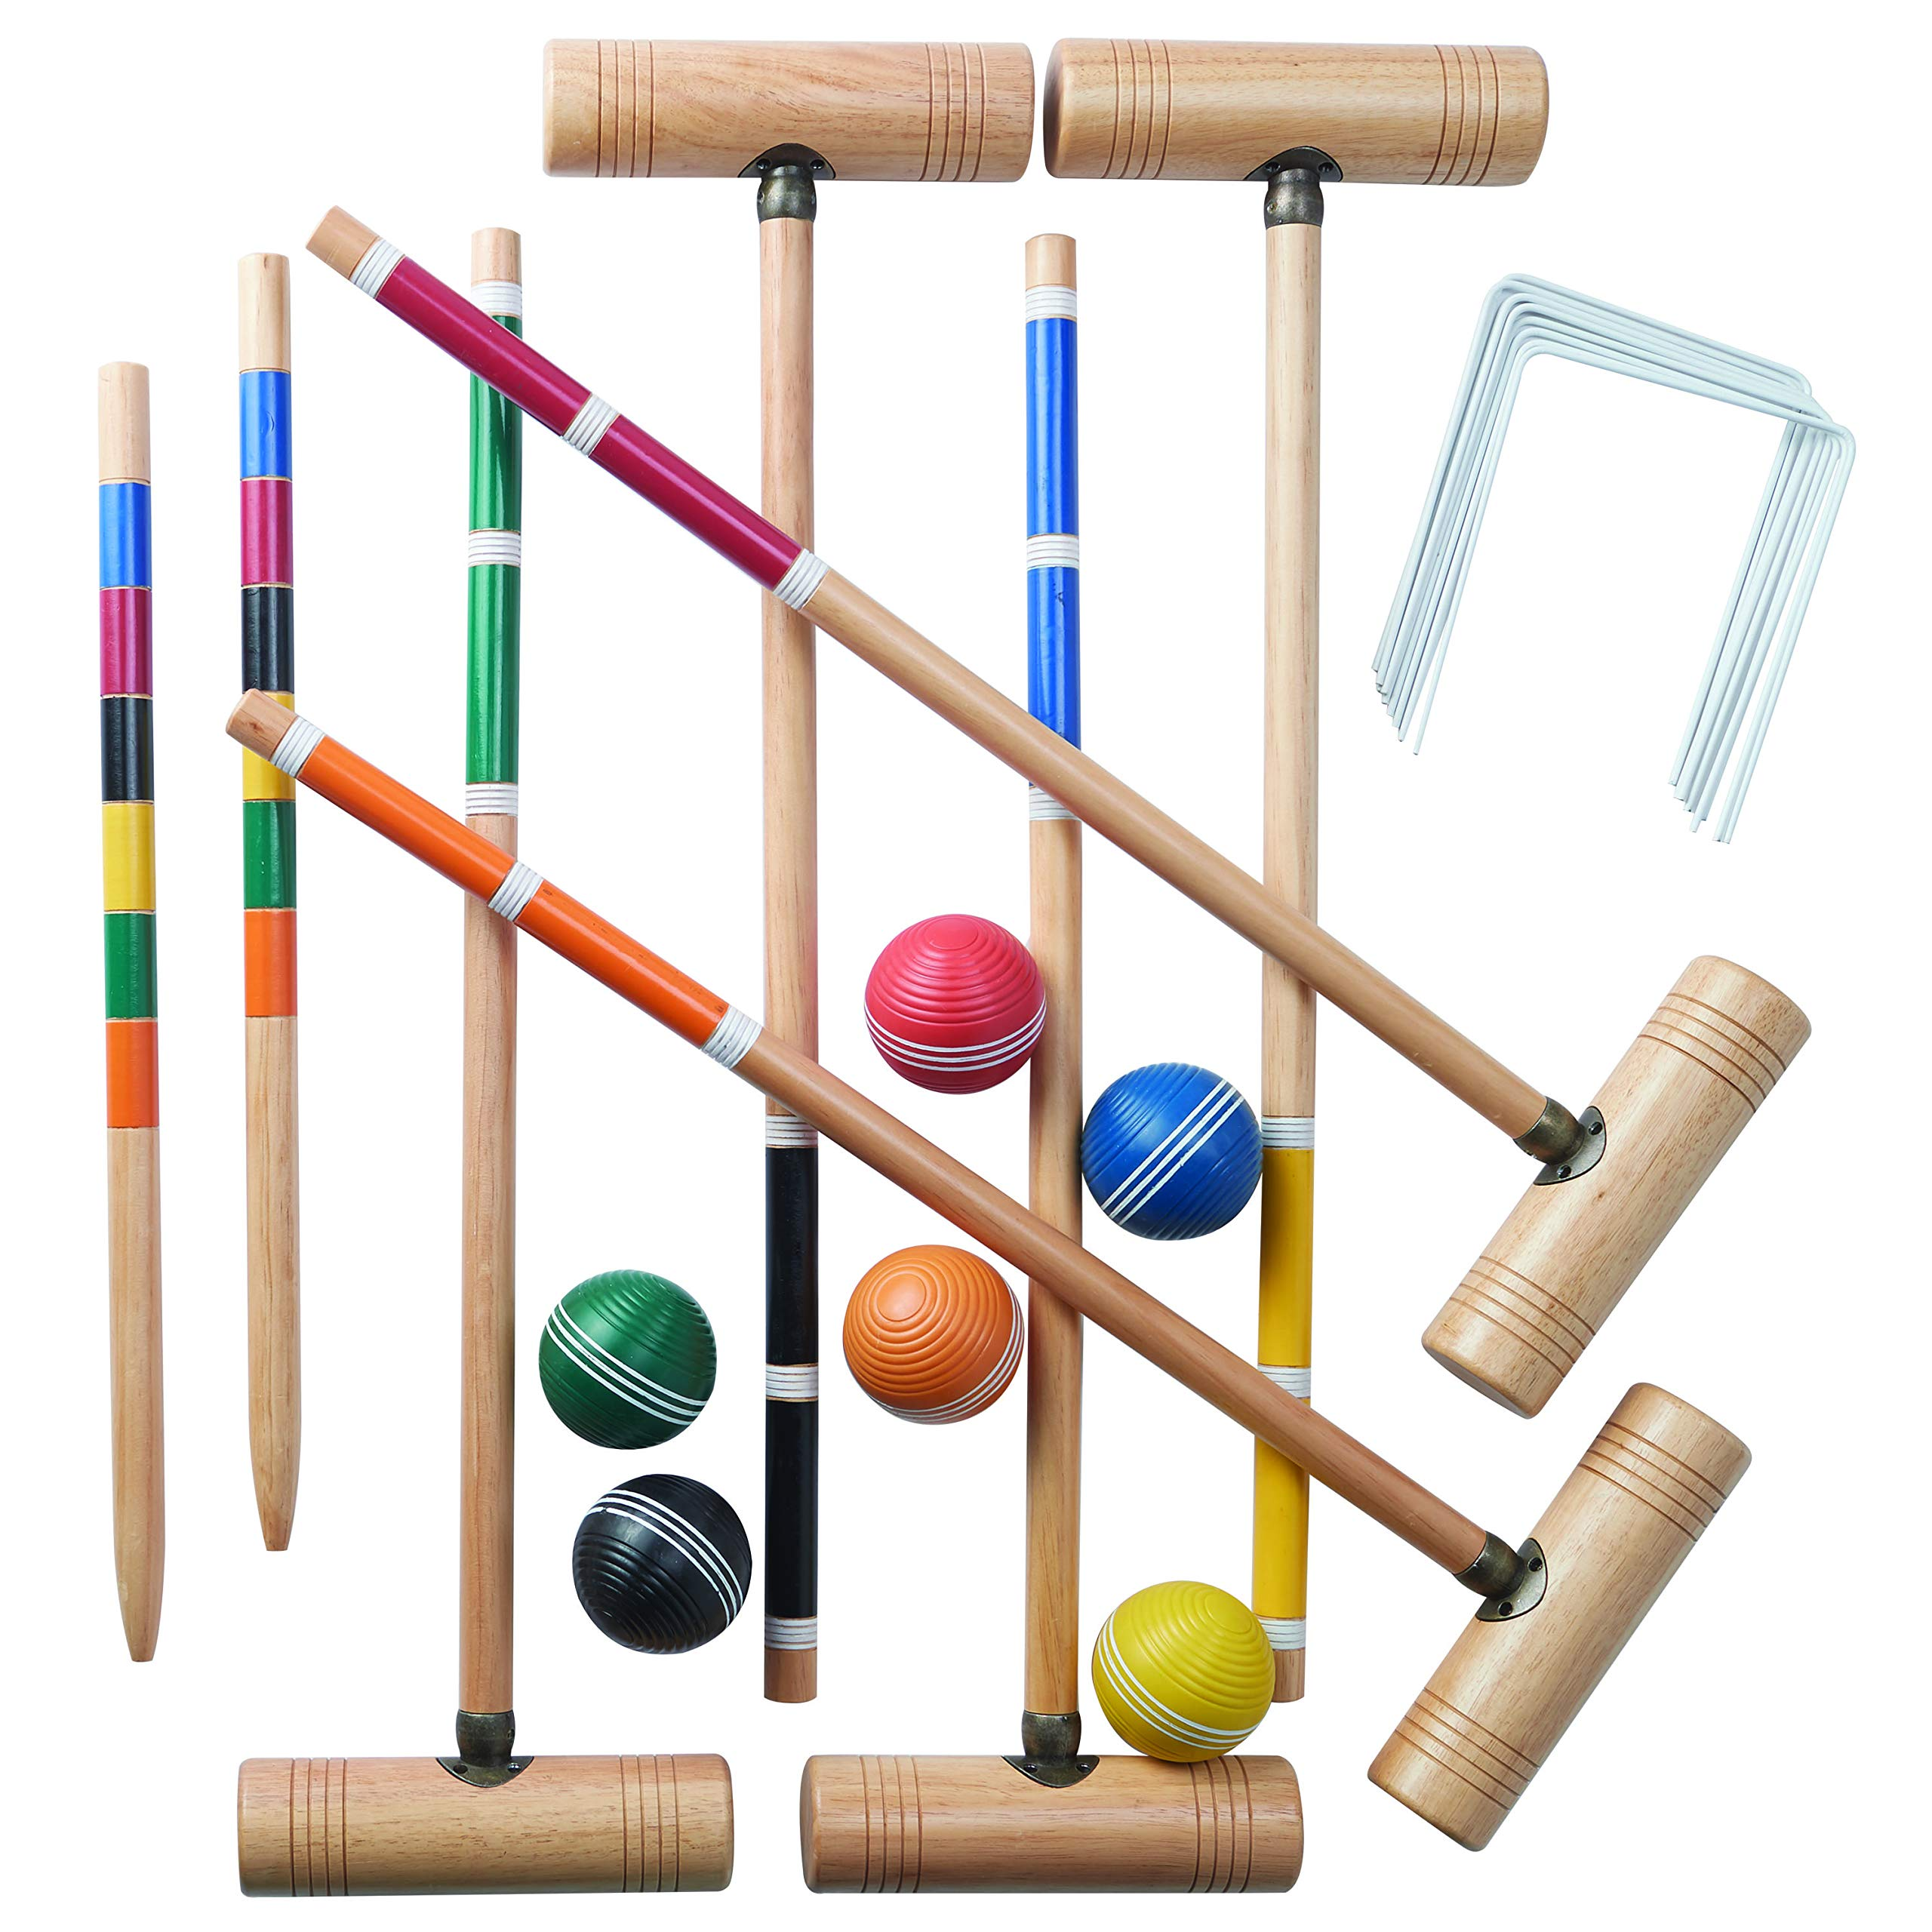 Franklin Sports Croquet Set - Up to 6 Players - Professional Quality Croquet Set for Lawn Games - Complete Croquet Set with Carrying Case - Includes Wooden Mallets, Durable Balls, Weatherproof Wickets by Franklin Sports (Image #1)